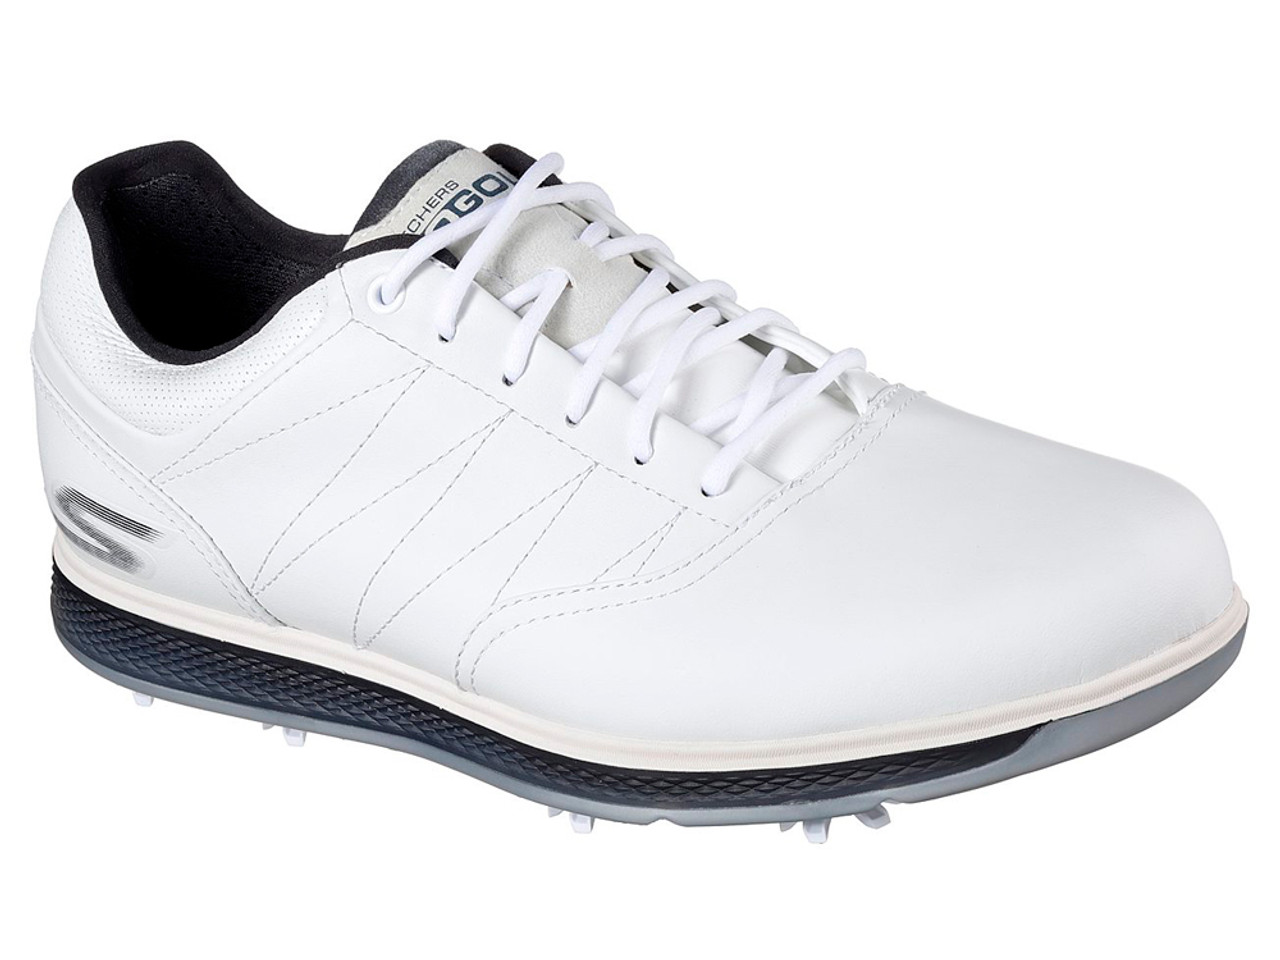 Skechers Performance Receives Honors for Best Golf Shoe in